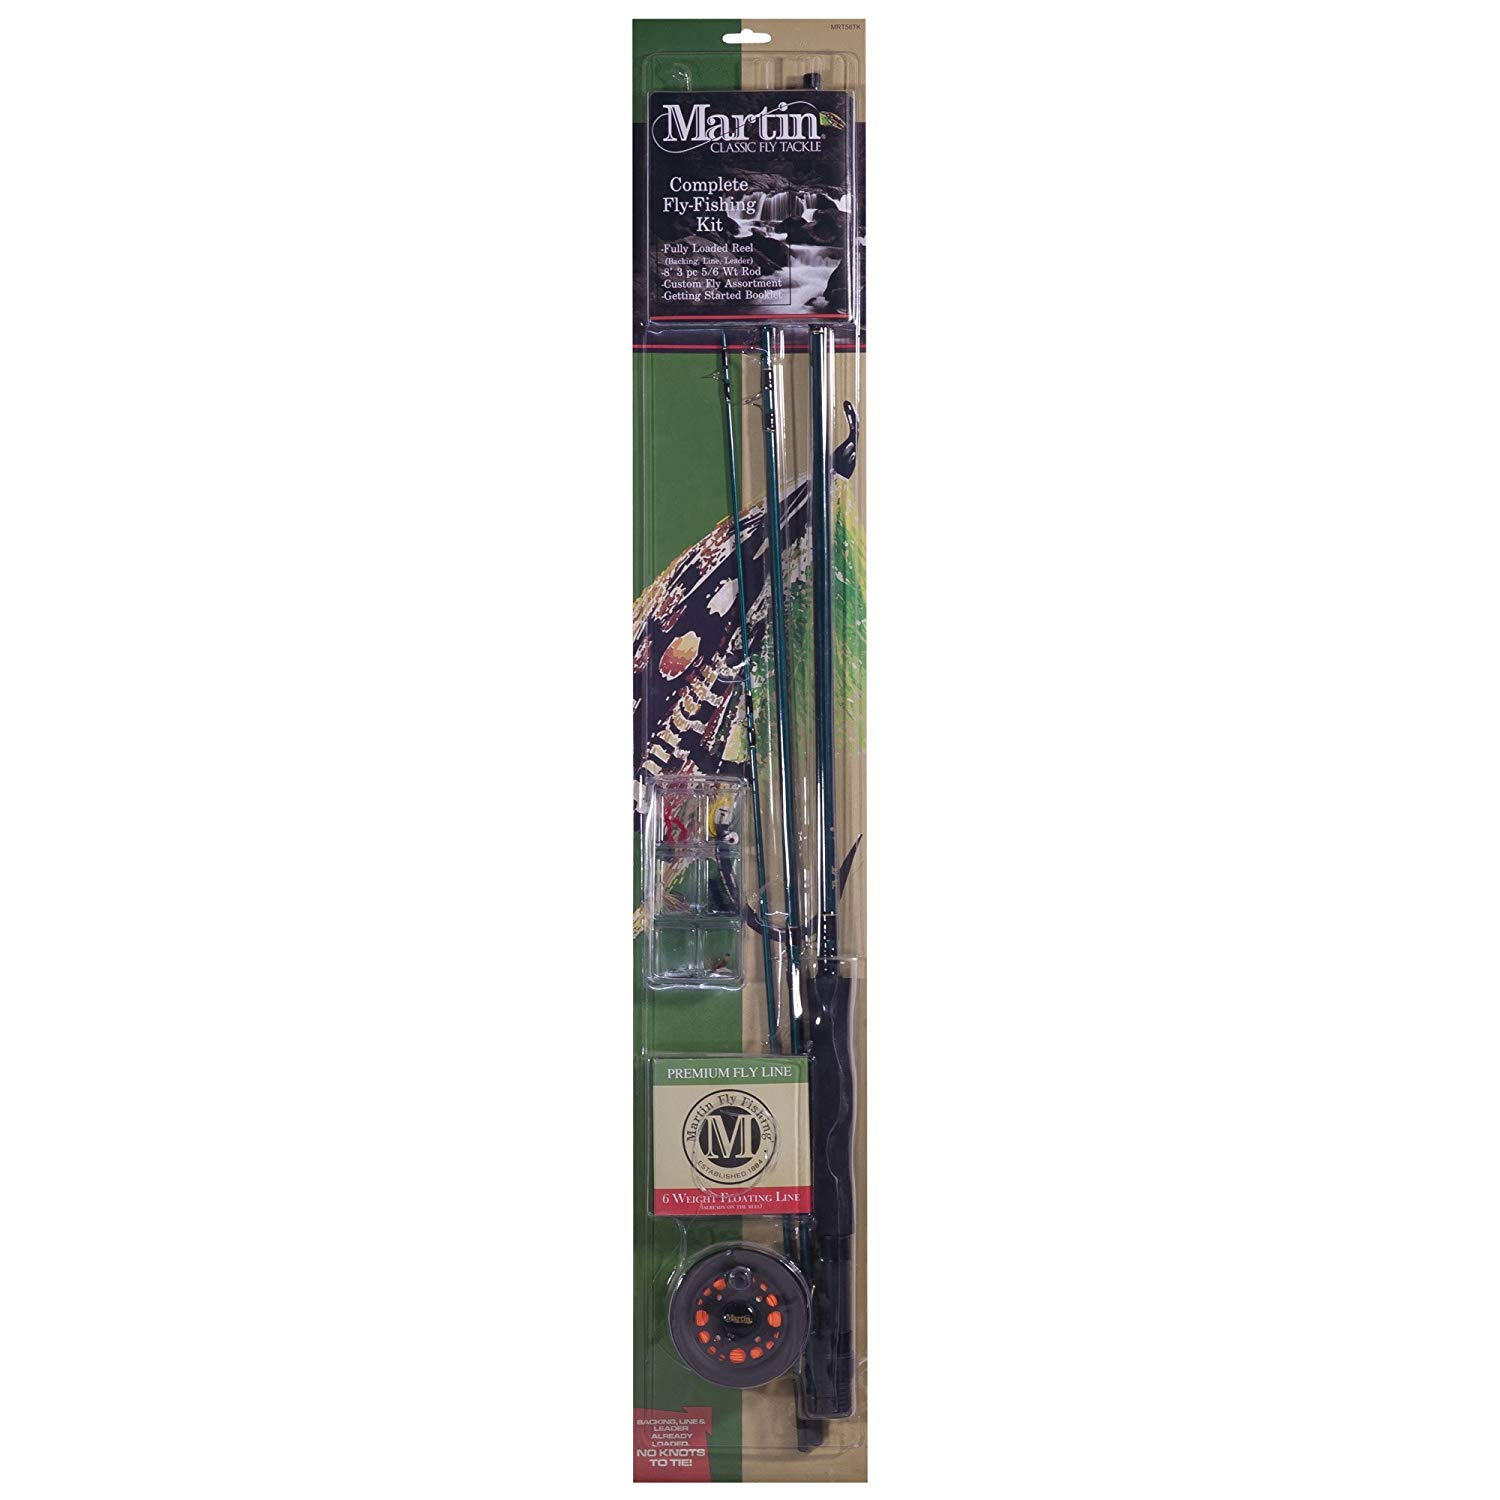 Martin Fly Fishing Martin Fly Complete Fly Fishing Kit 6 Lb (Pack of 1)